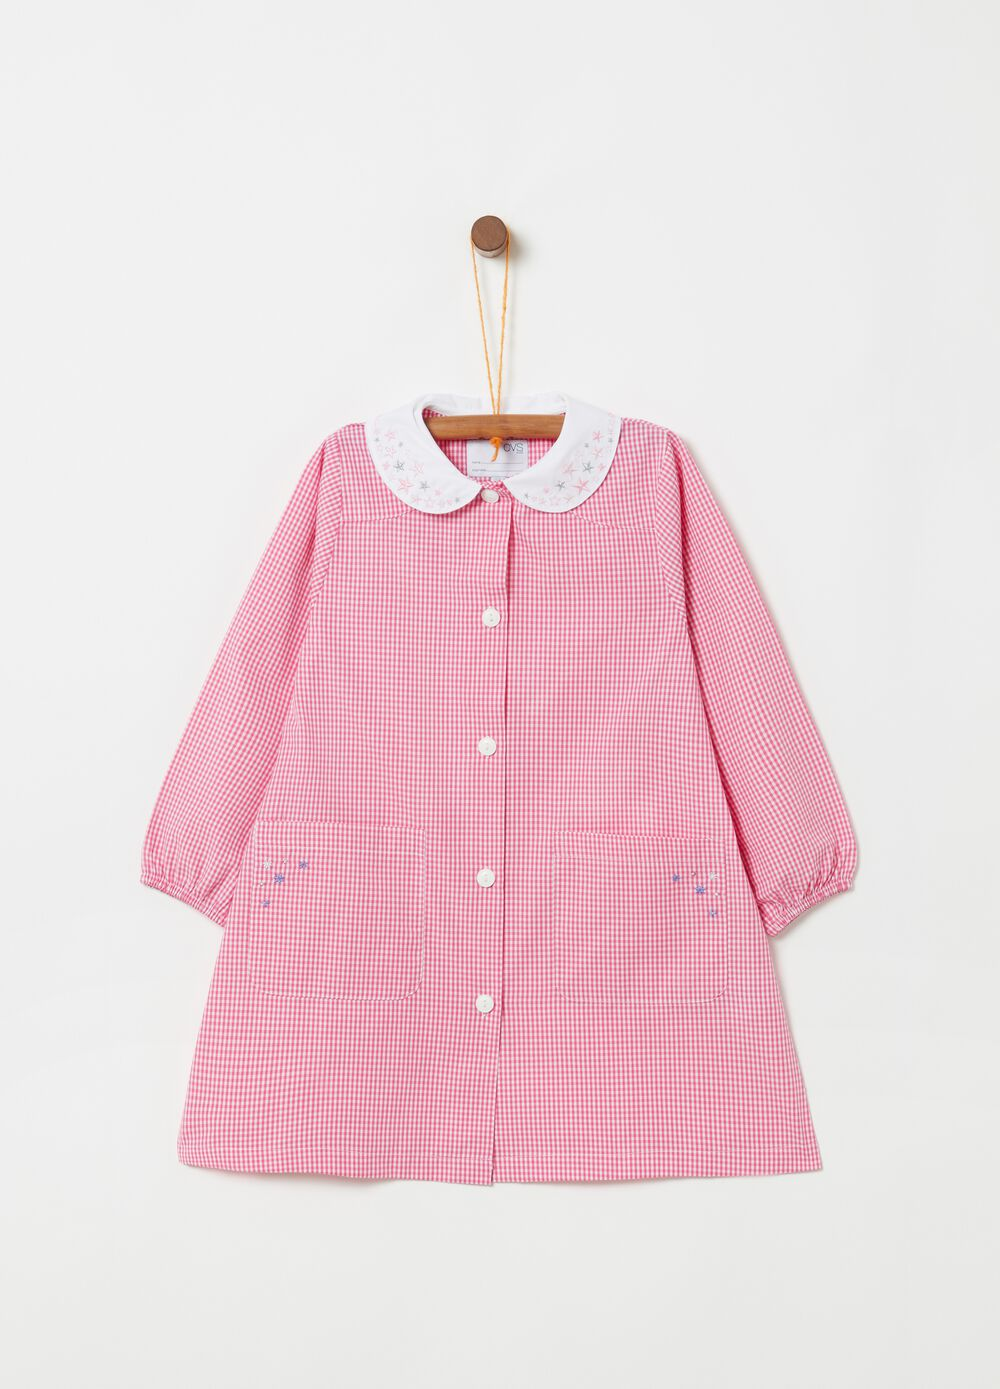 Smock with pockets embroidery and checked pattern